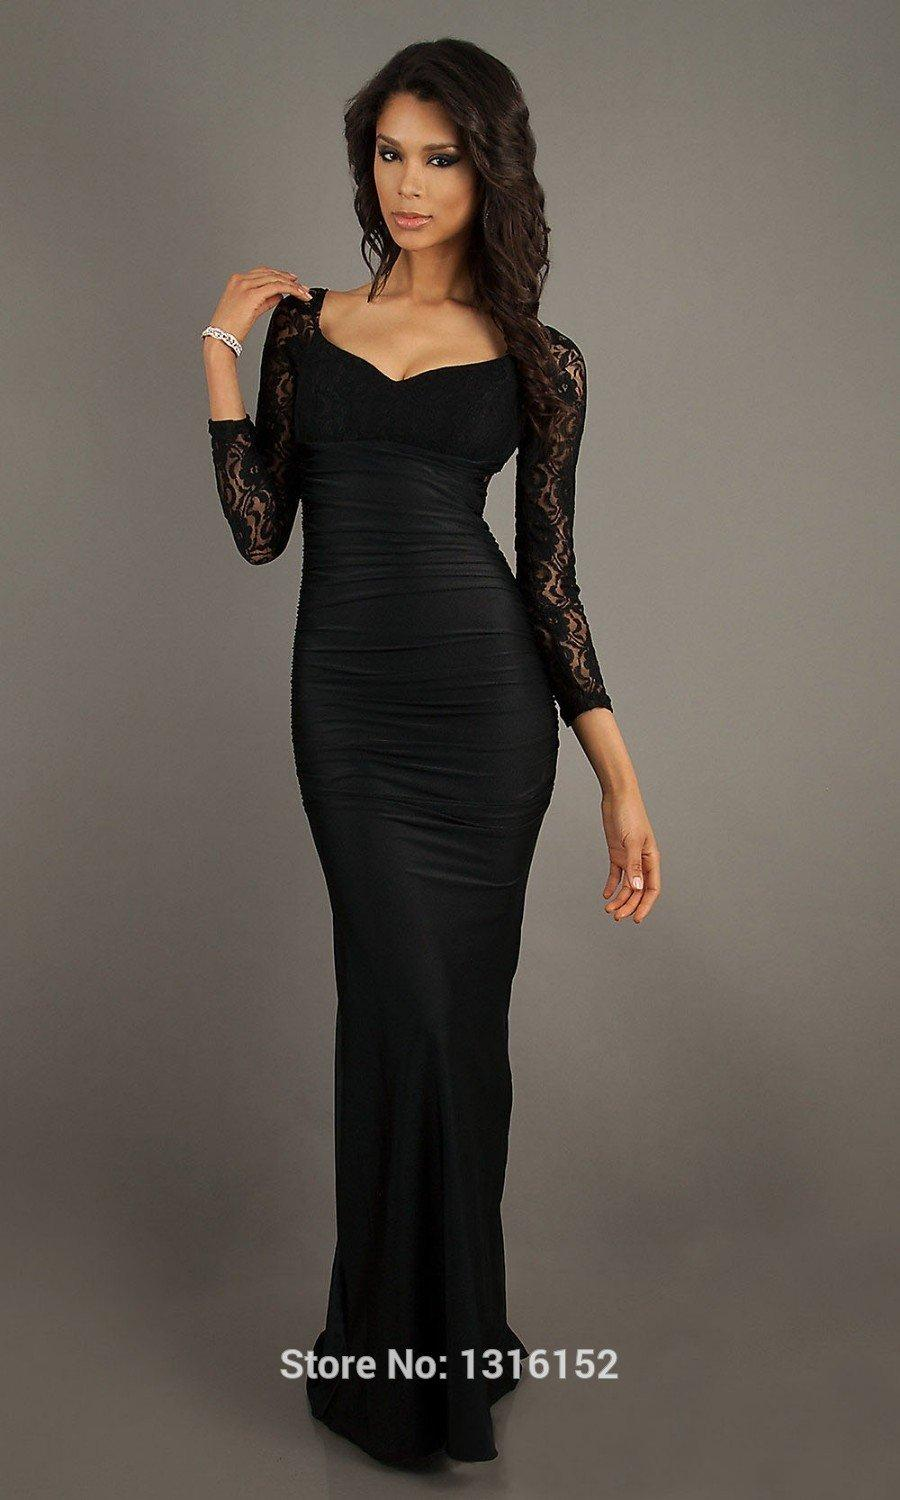 15 Dresses That Will Expose the Perfect Curves on Your Body